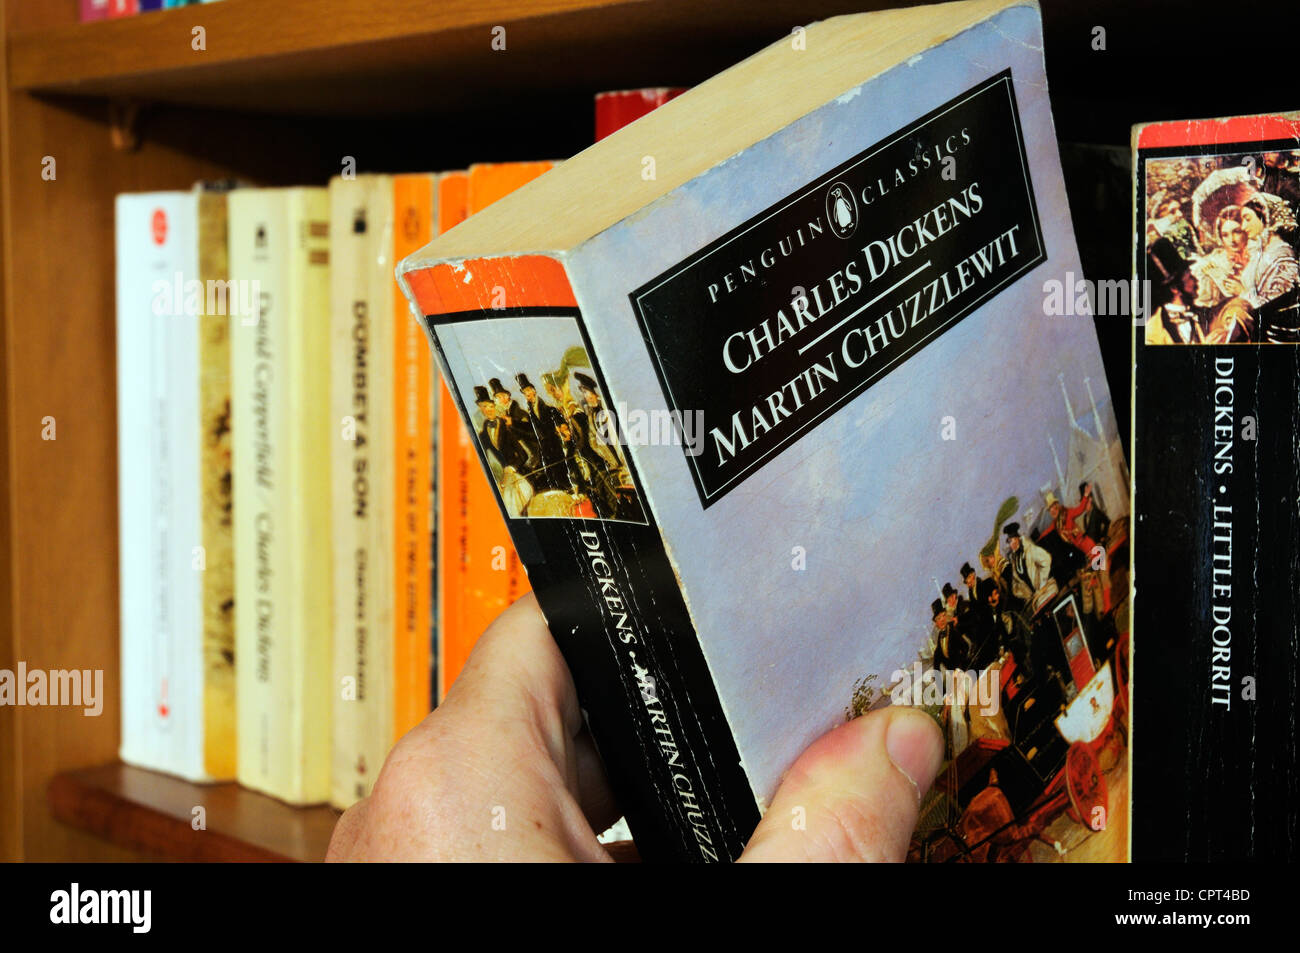 A hand taking Charles Dickens Martin Chuzzlewit  from a bookshelf - Stock Image